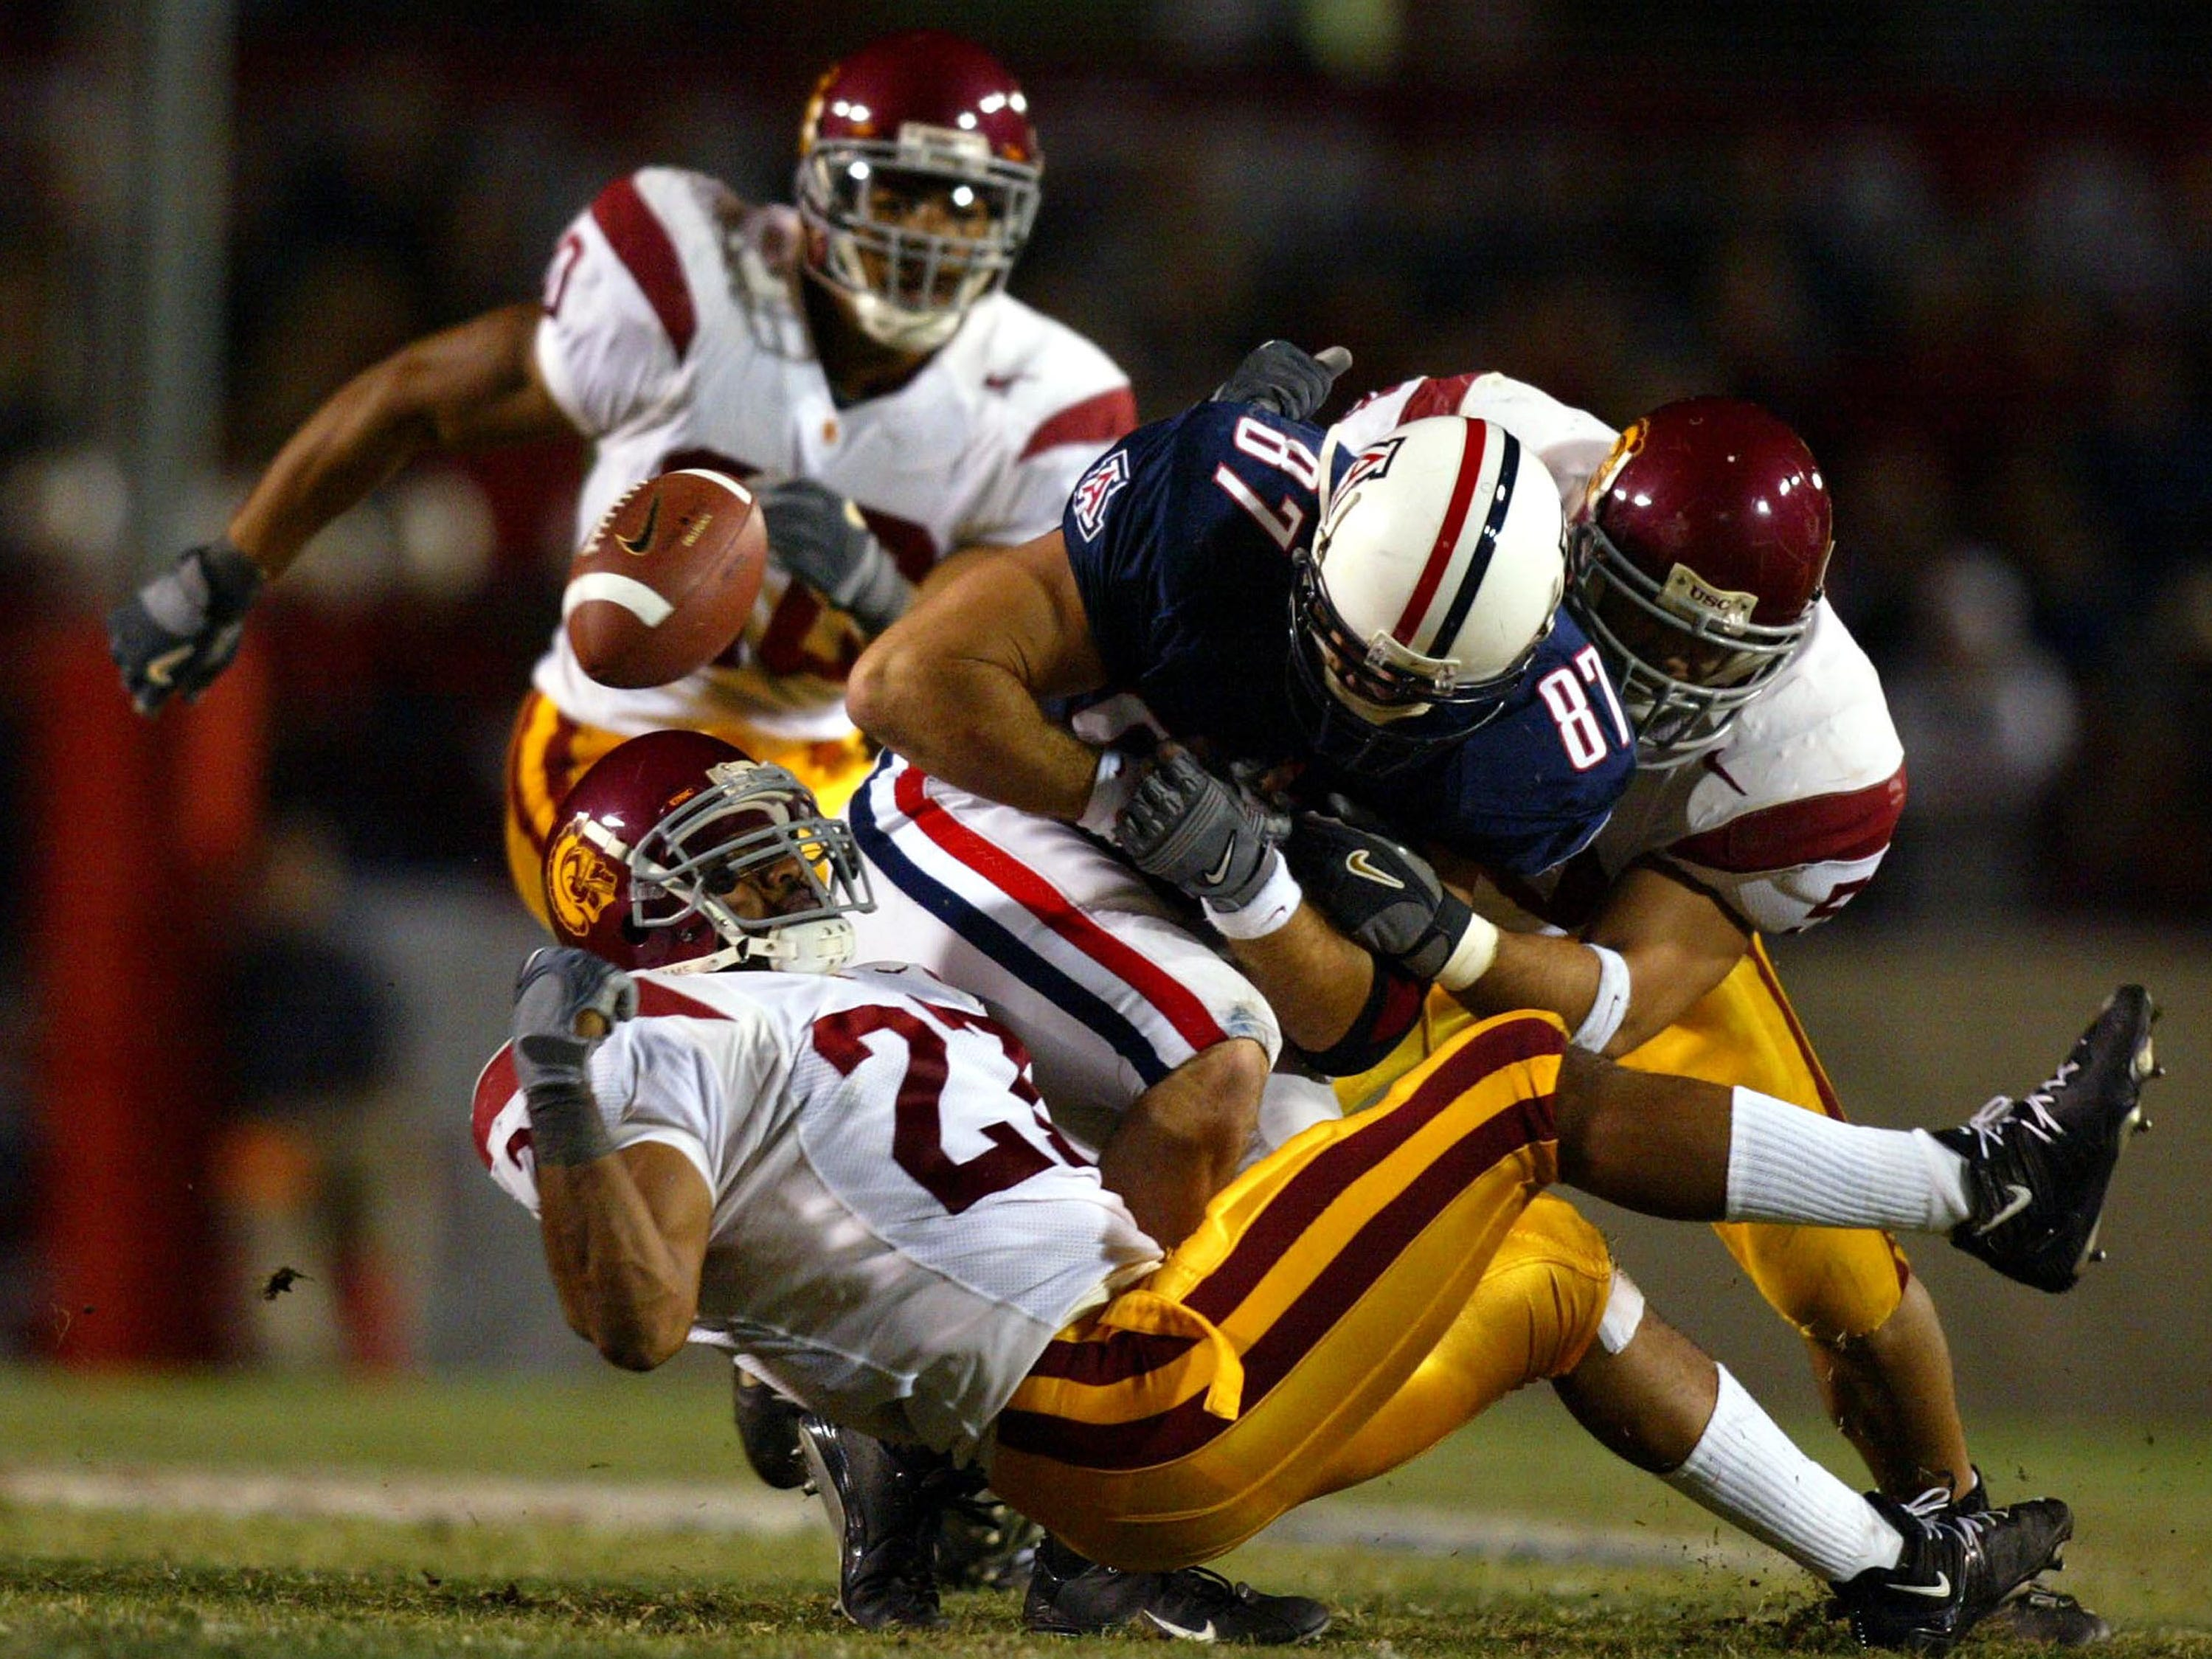 TUCSON, AZ - NOVEMBER 15:  Jason Leach #27 of the USC Trojans causes the fumble by Steve Flemming #87 of the Arizona Wildcats during the 2nd period of their game at Arizona Stadium on November 15, 2003 in Tucson, Arizona.